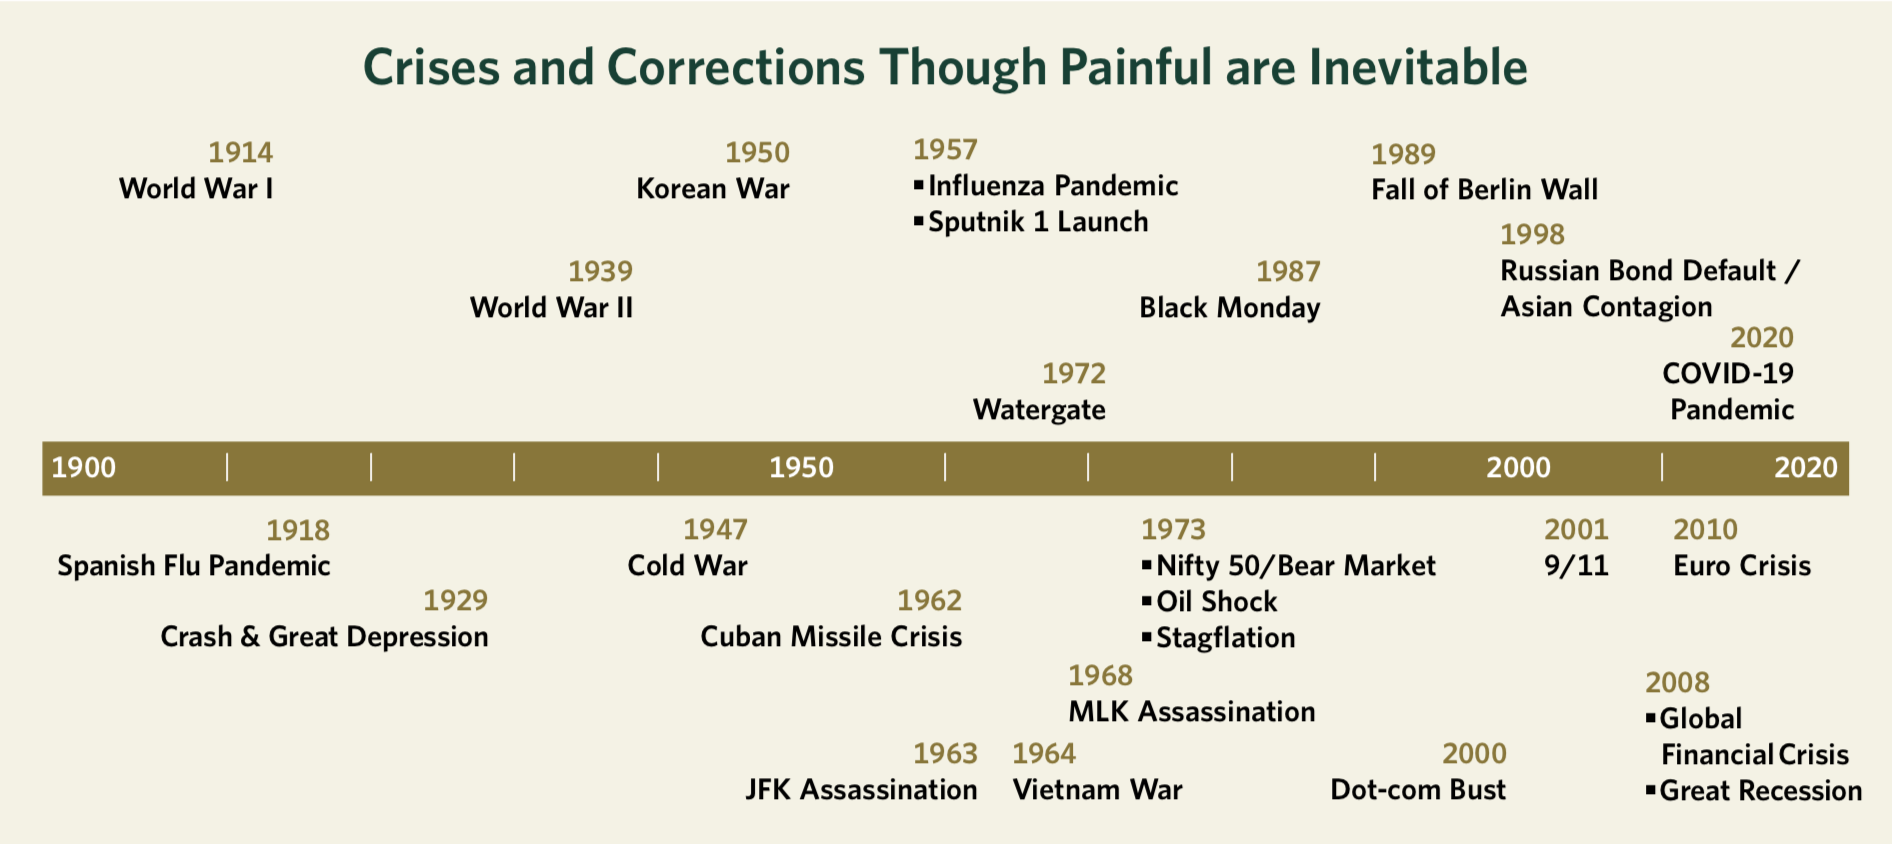 Crises and Corrections Though Painful are Inevitable